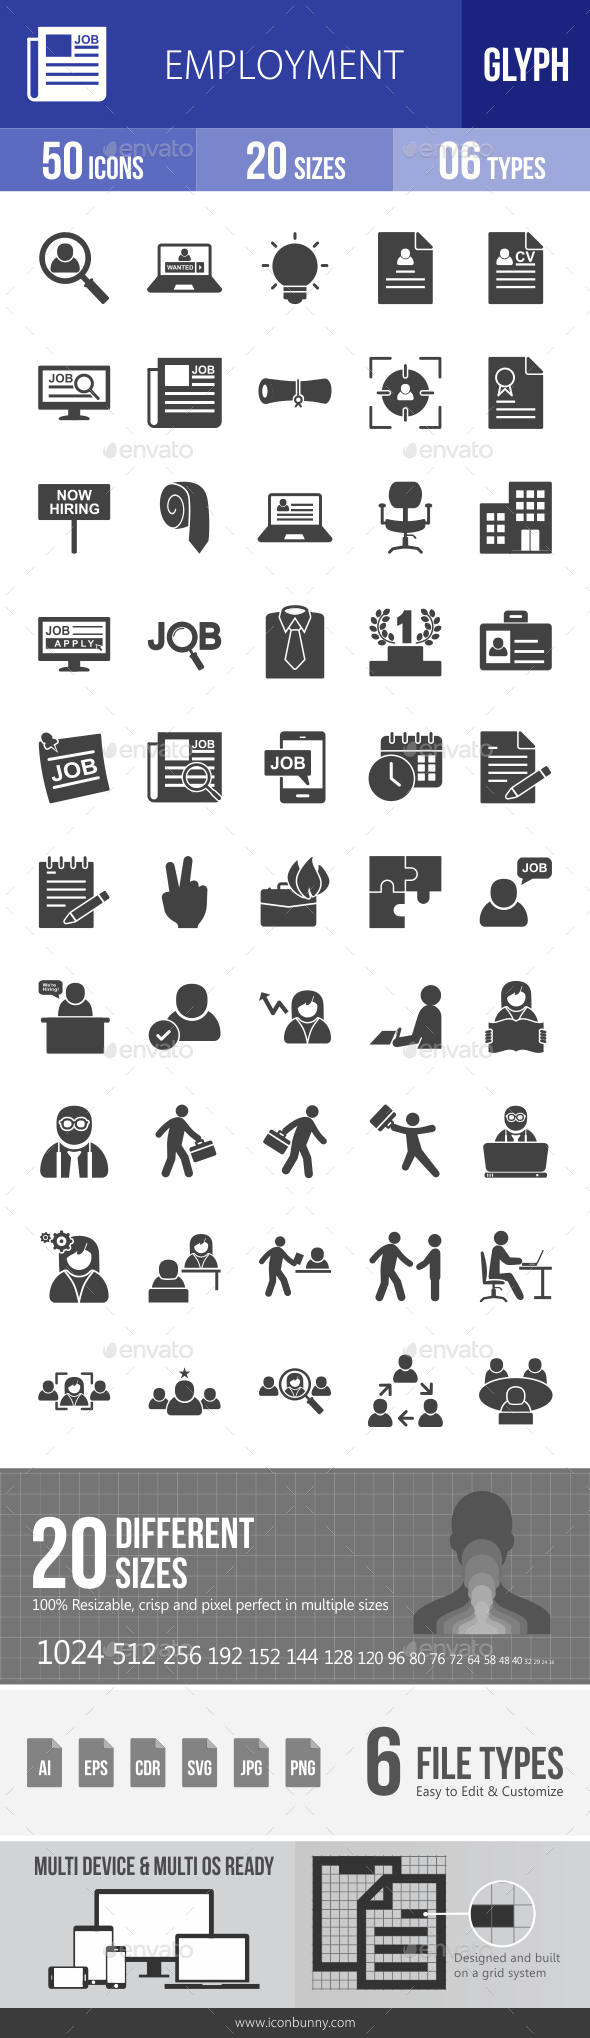 Employment Glyph Icons - Icons